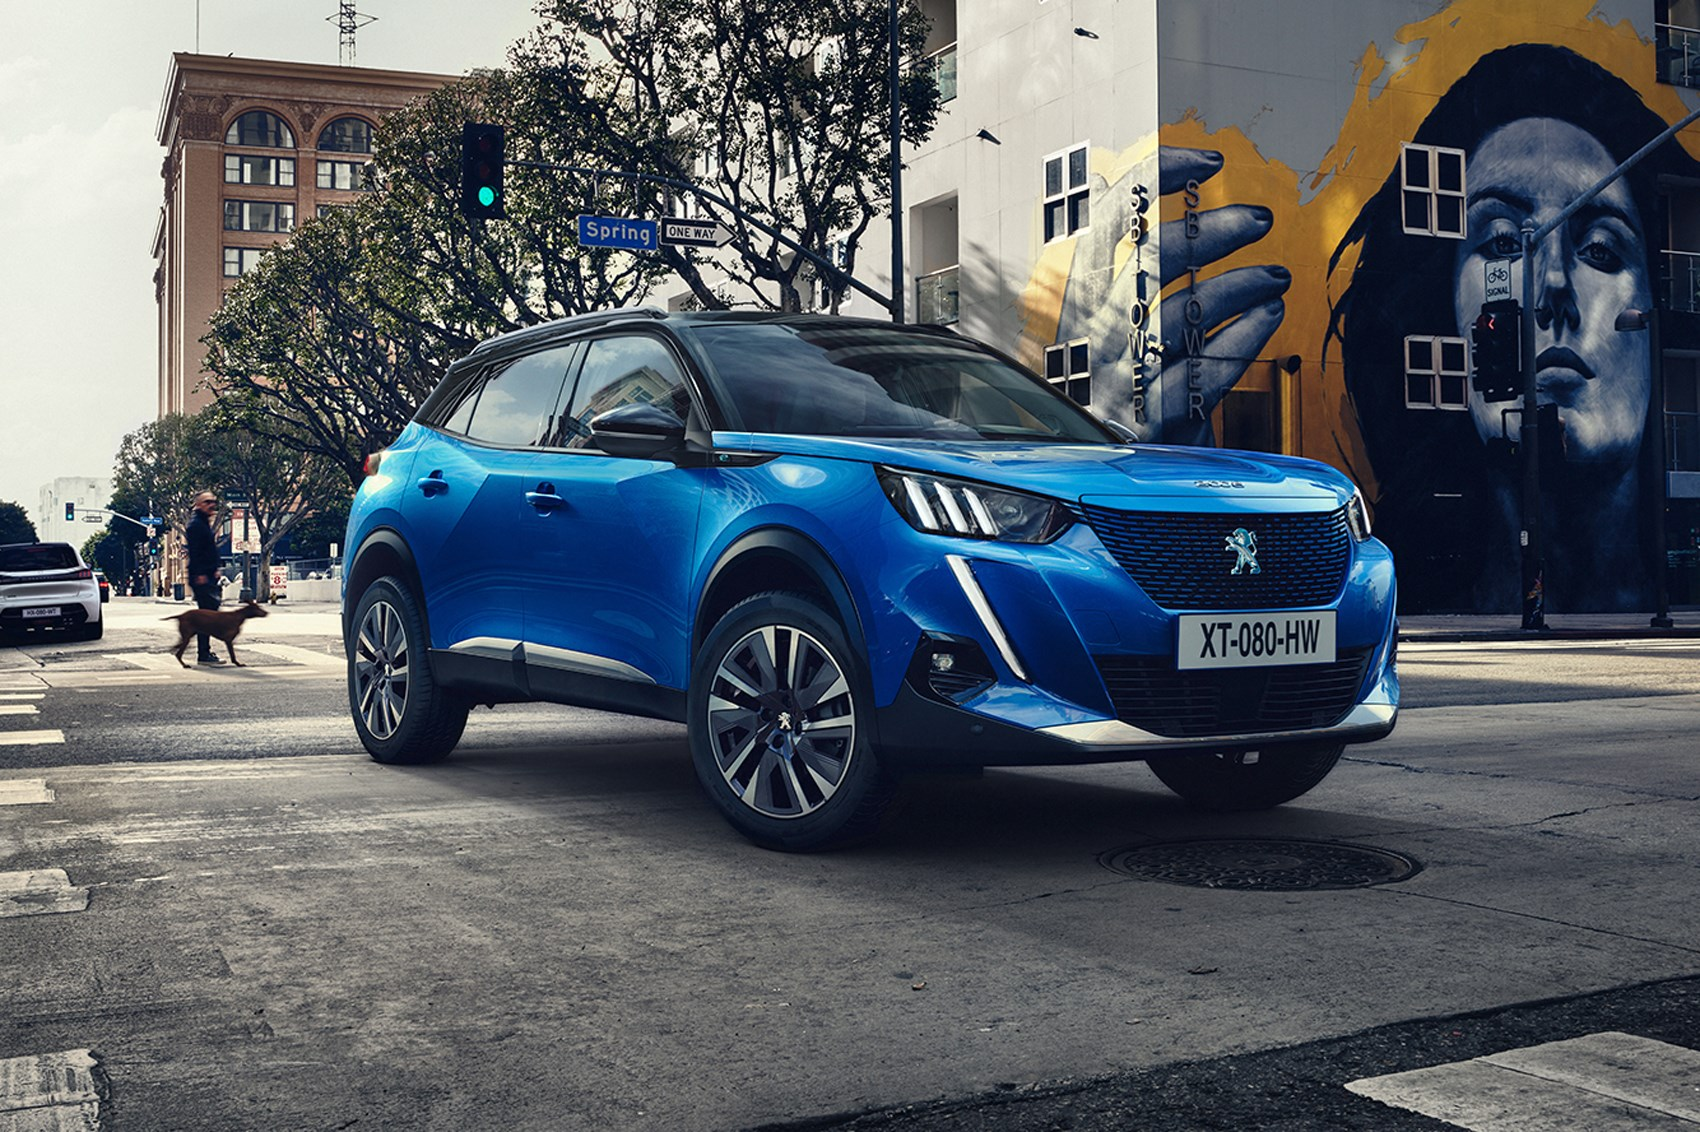 Toyota Of Murray >> New Peugeot 2008: 2019's on-trend crossover arrives | CAR ...